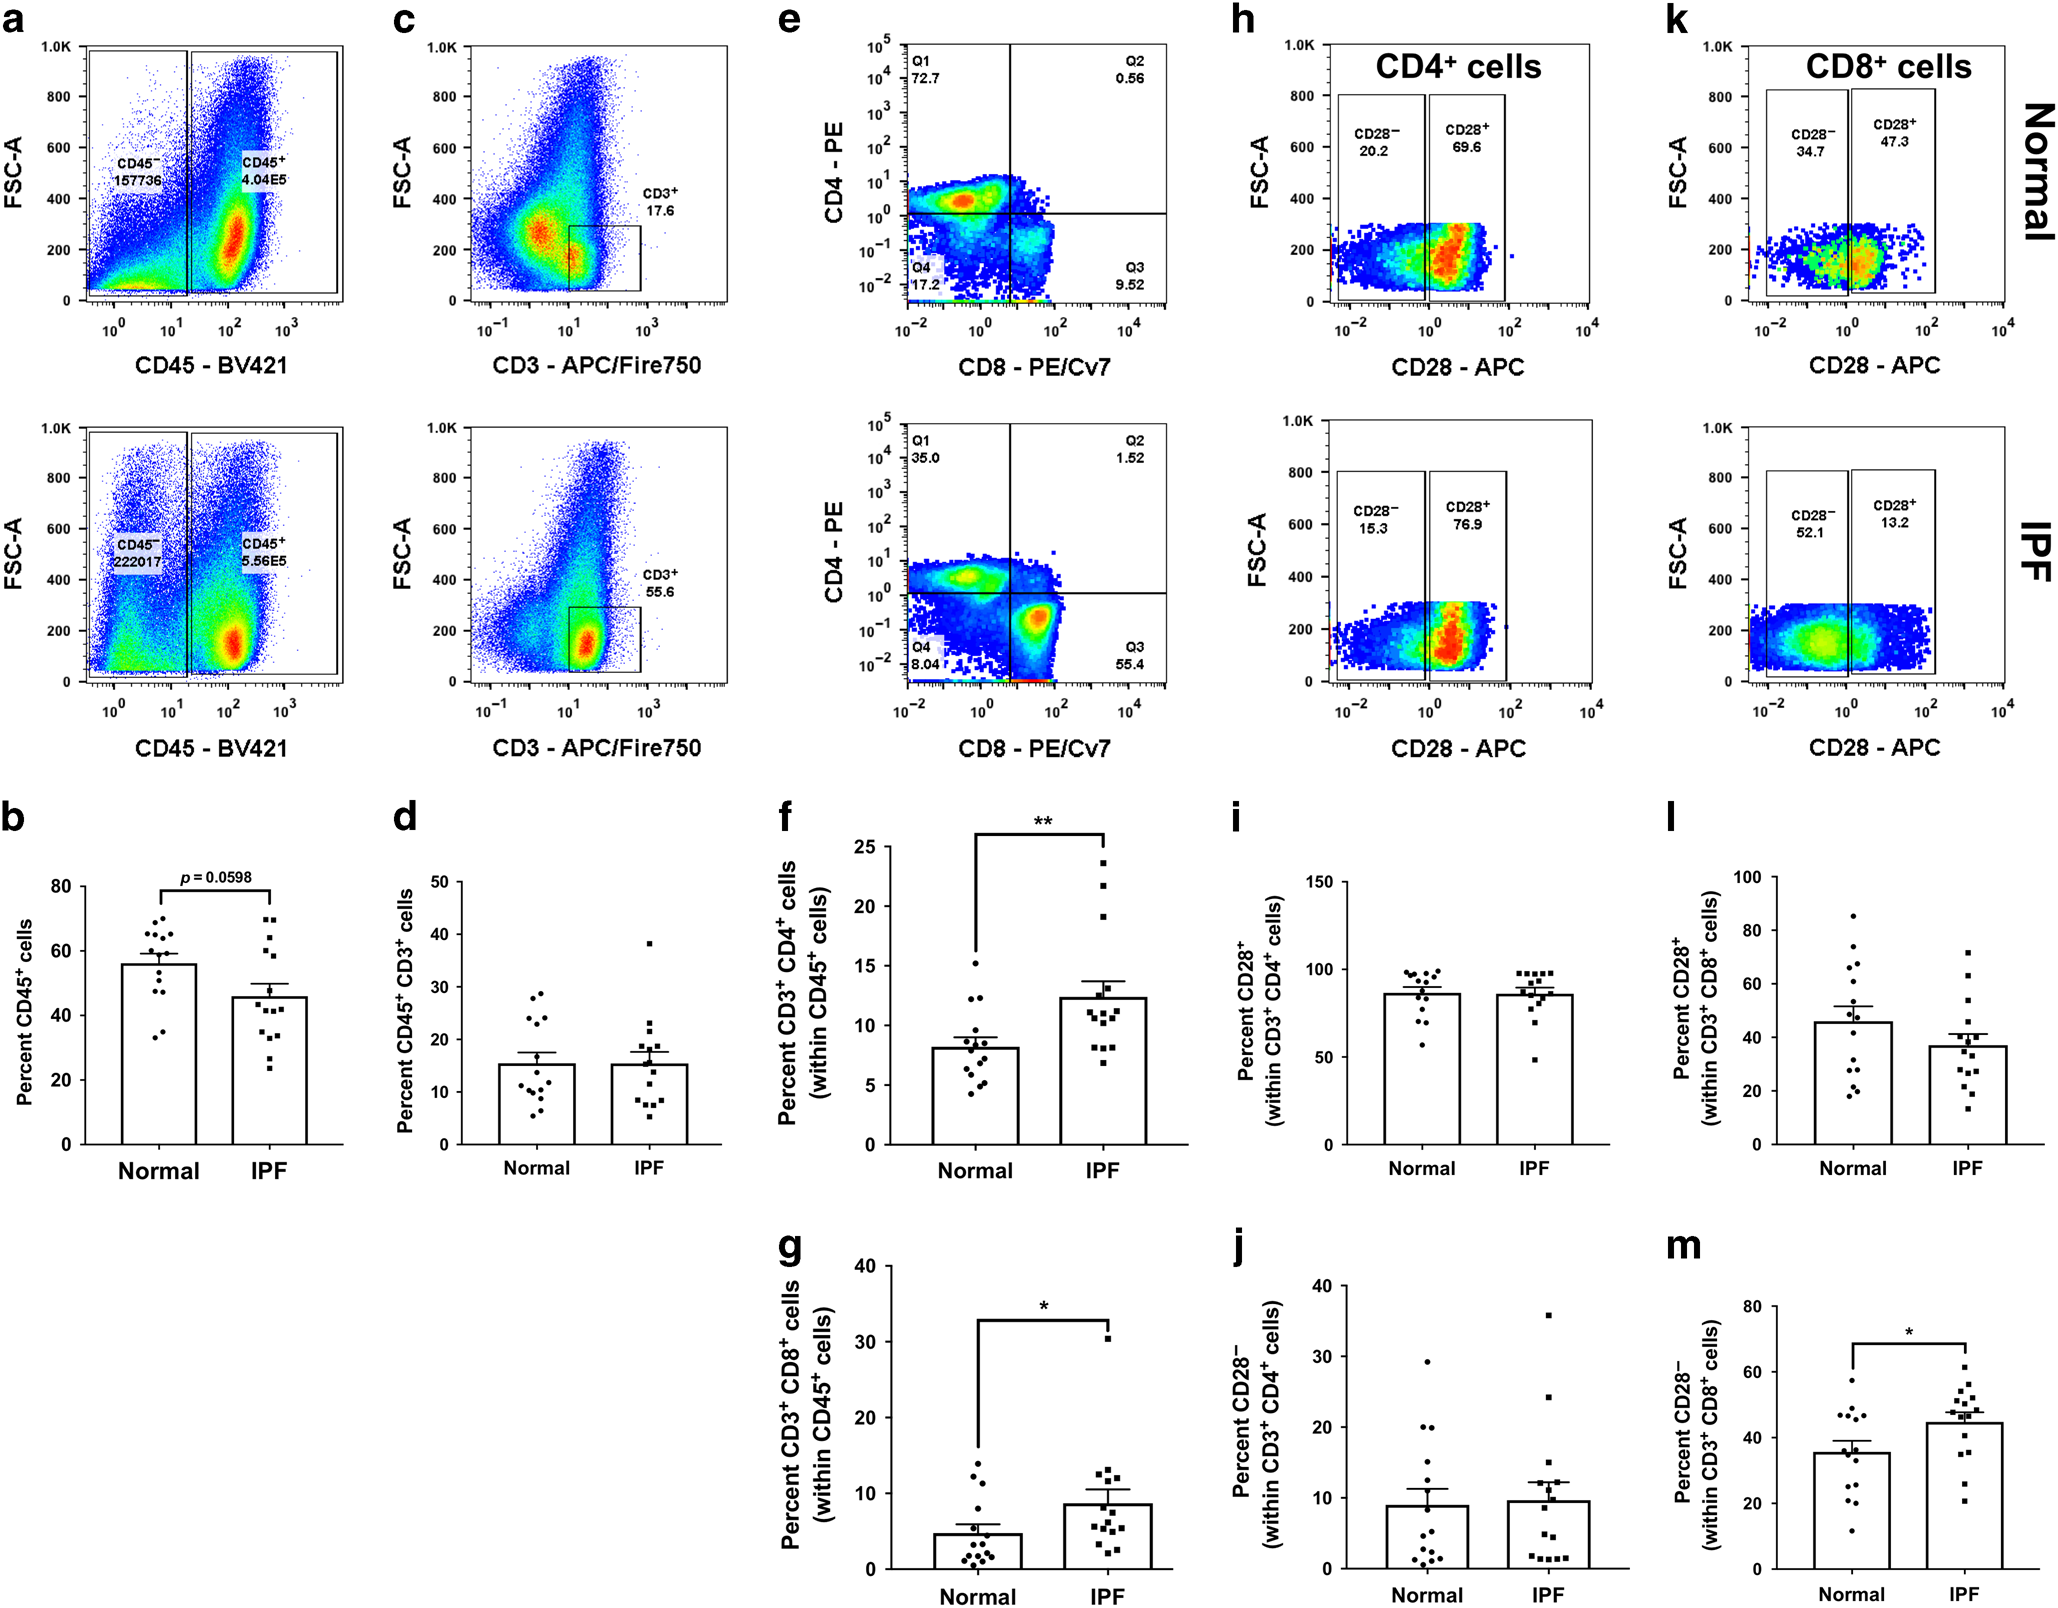 Characterization of CD28 null T cells in idiopathic pulmonary